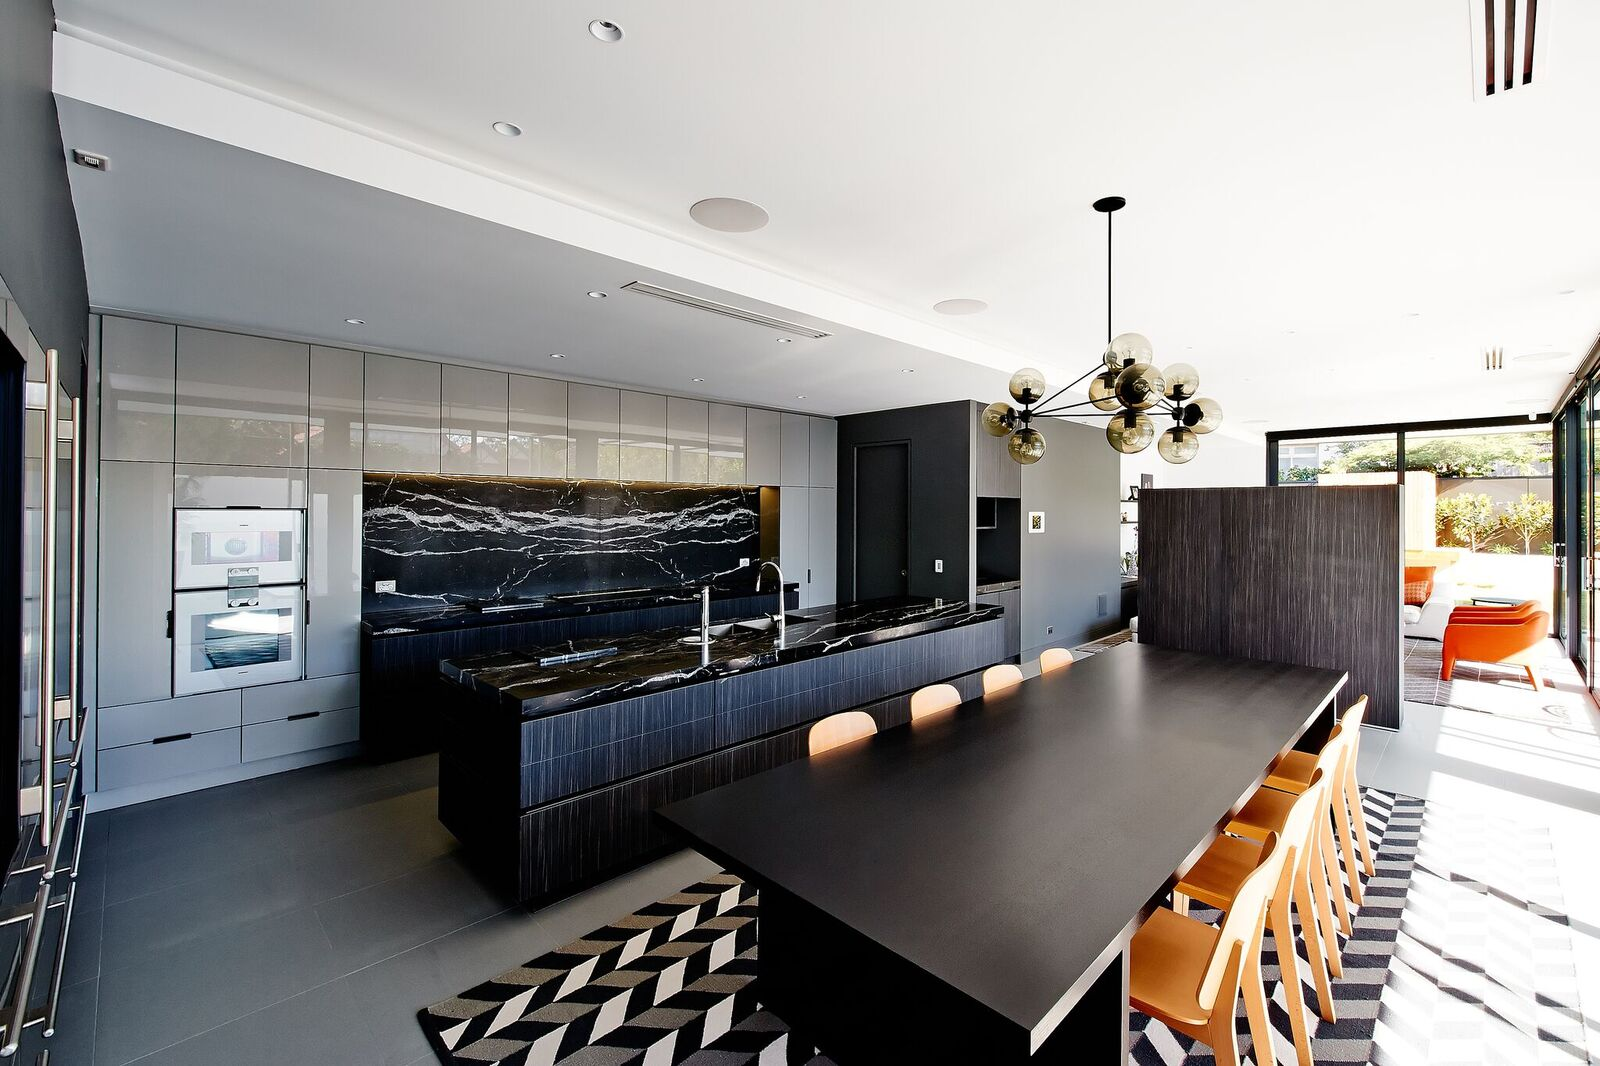 Stone Benchtop Fabricating Business for Sale Melbourne in Victoria